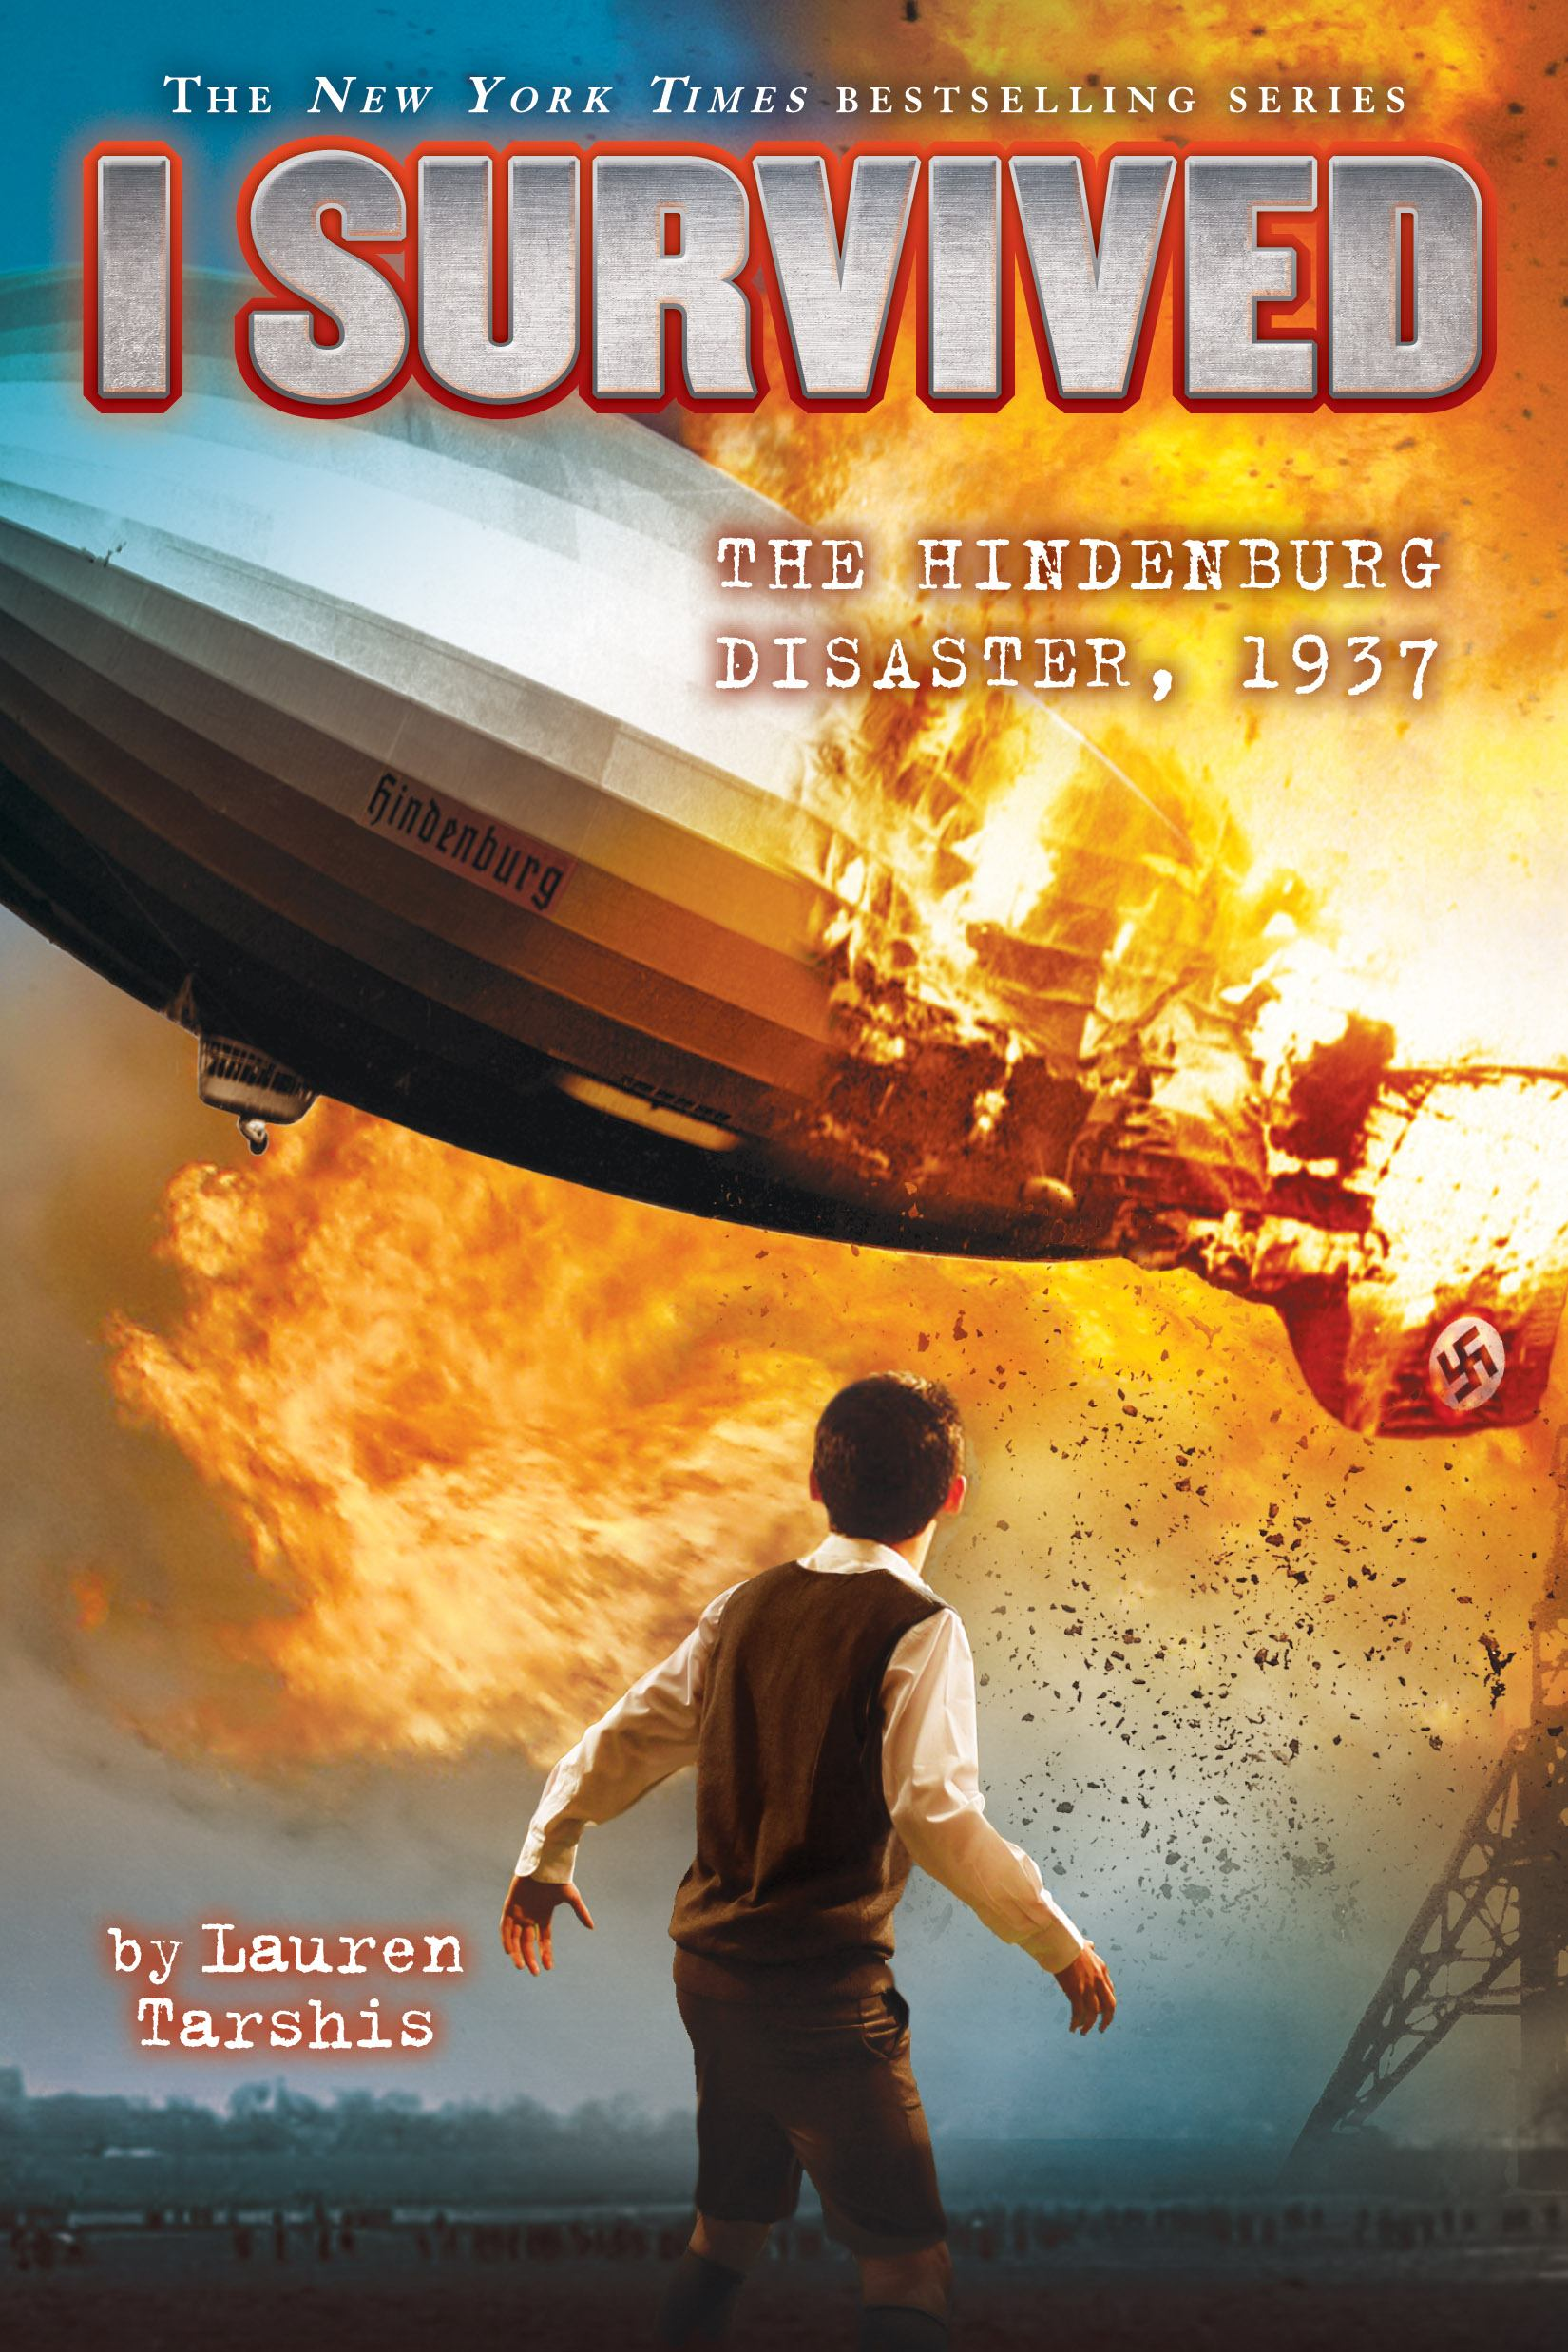 I Survived the Hindenburg Disaster 1937 by Lauren Tarshis